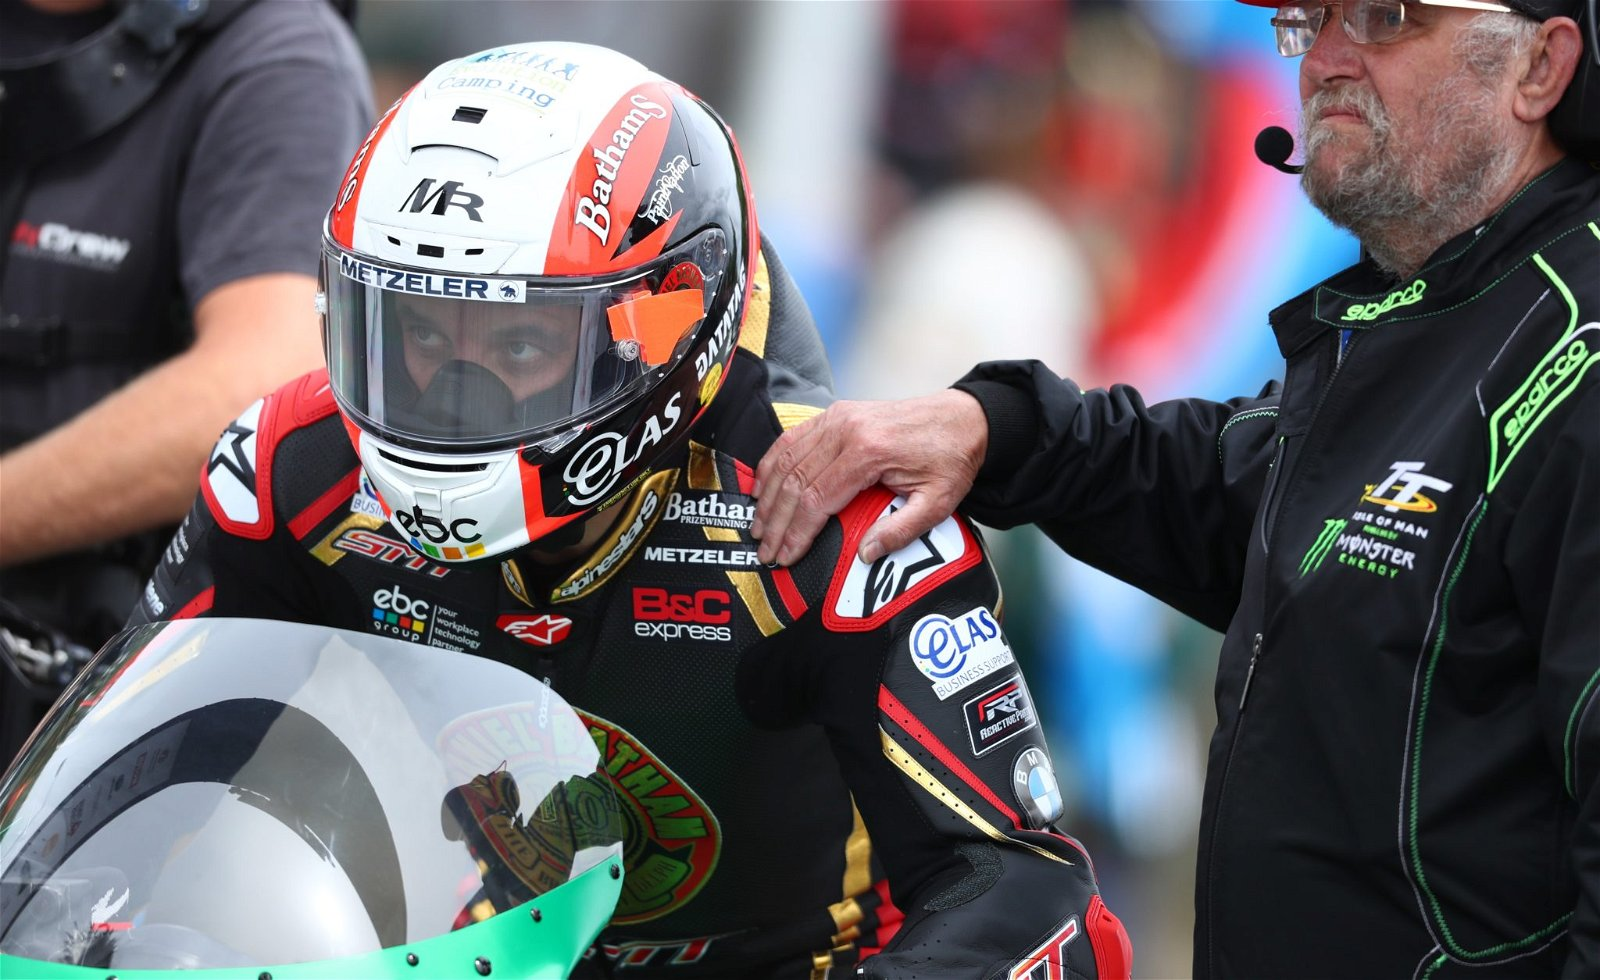 Michael Rutter at the TT credit Double Red